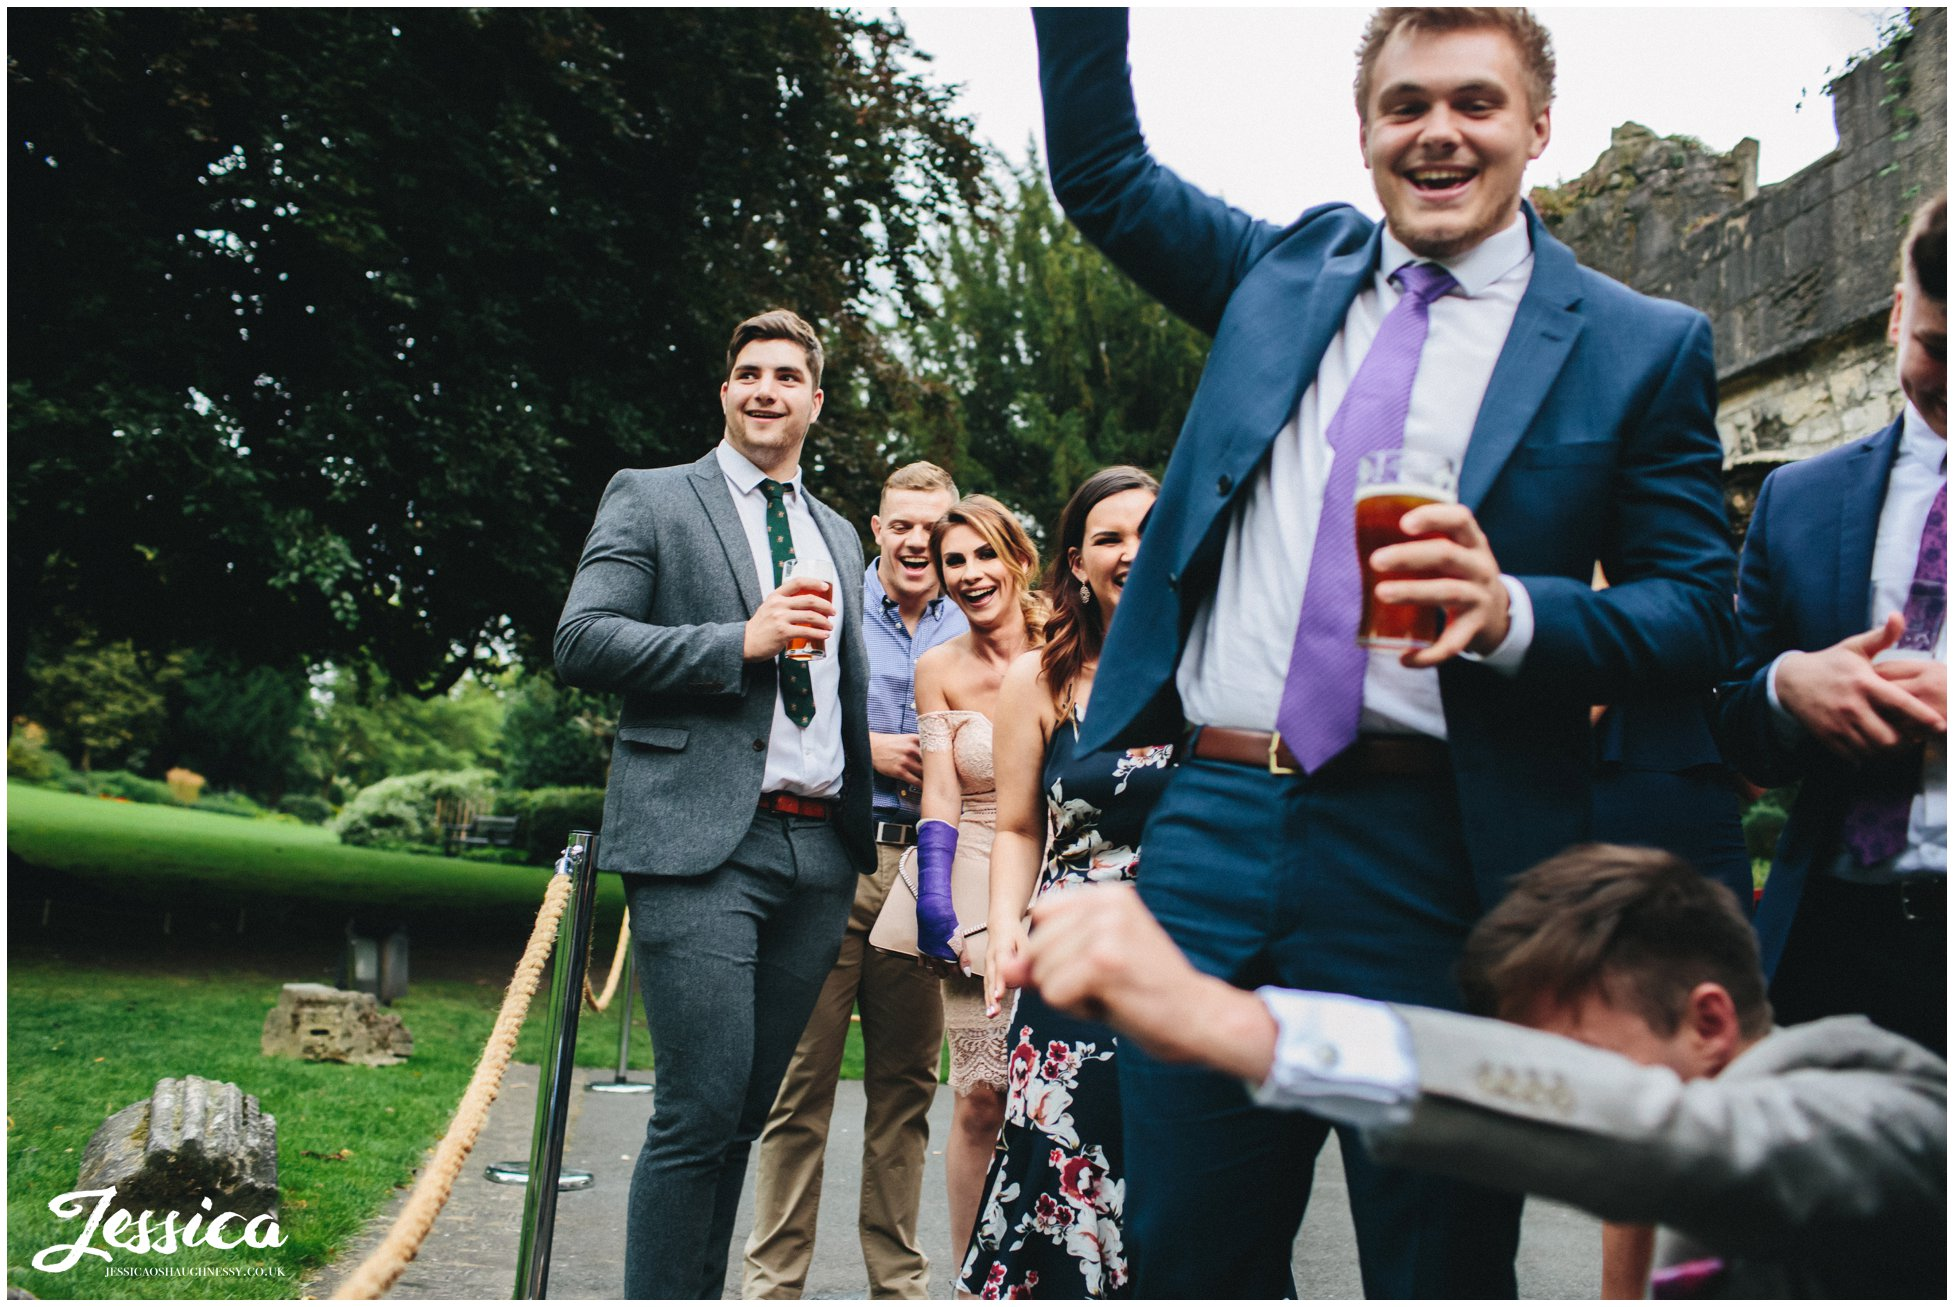 guests cheering at a wedding in york